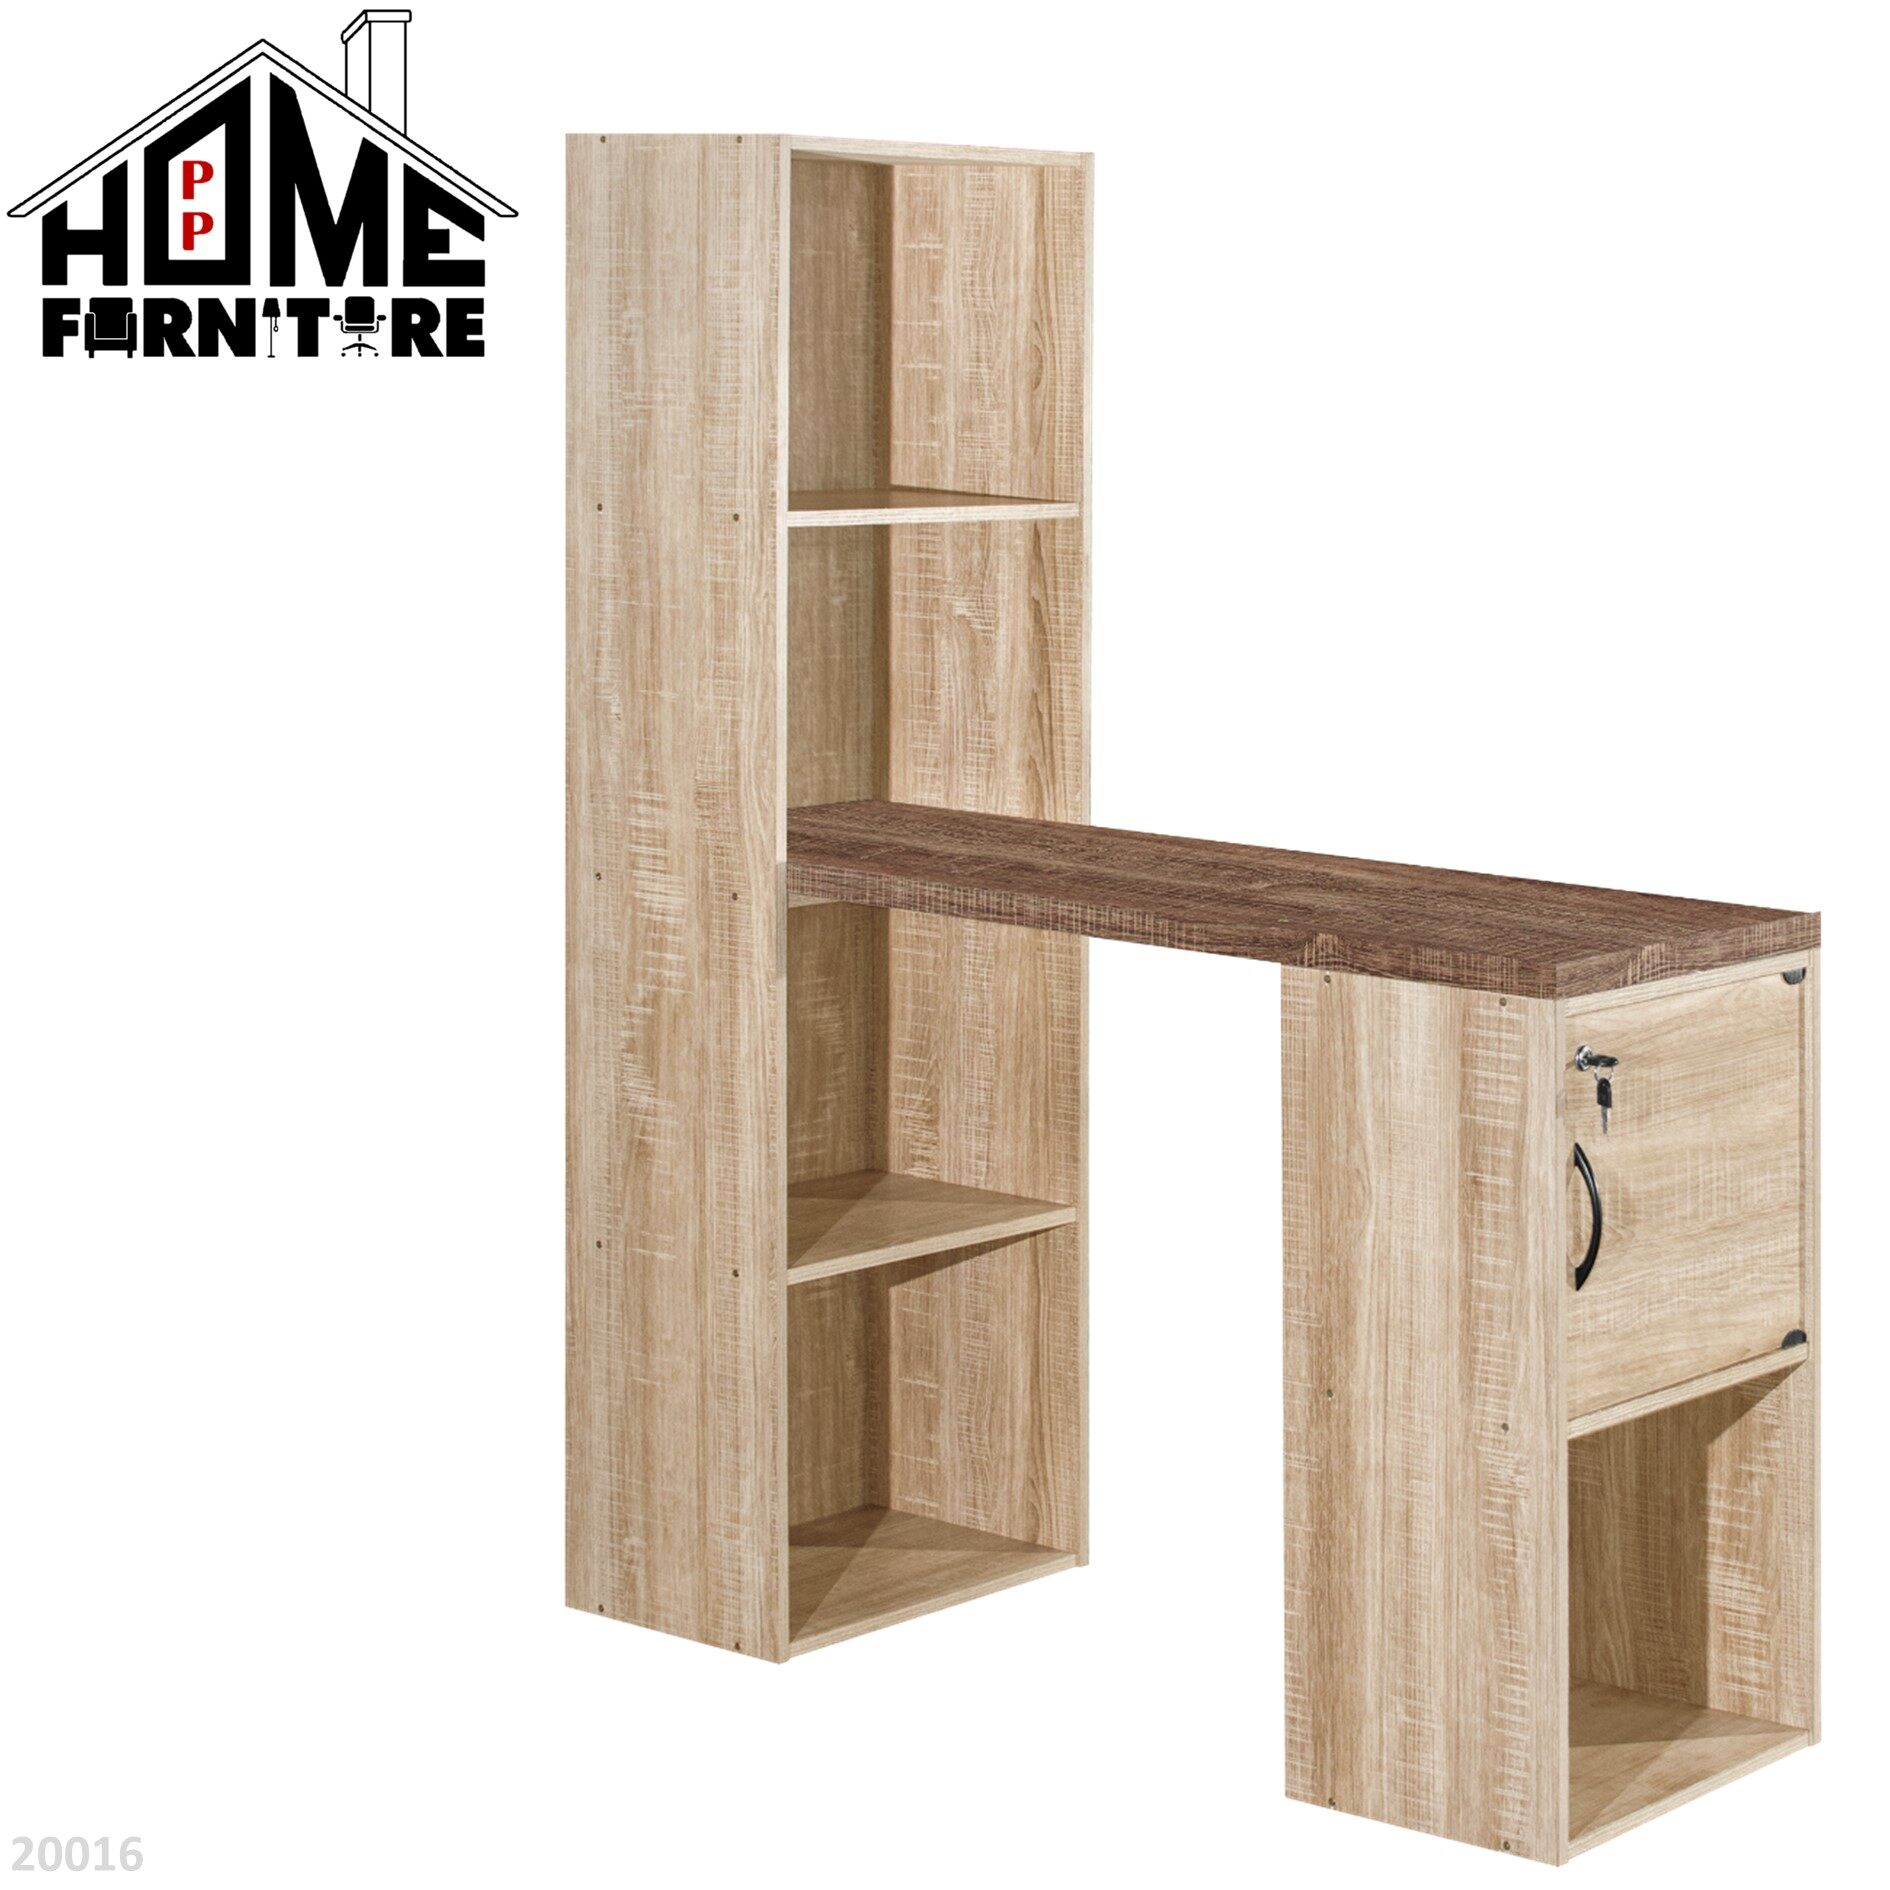 PP HOME Study Table with shelf & locker drawer/Writing table/Working table /PC table/ Student table/Home office table/Multipurpose table/Desk/Computer table/Destop/laptop/Meja belajar/Meja tulis/Meja kerja/komputer电脑桌/书桌/工作桌/读书桌/办公桌20017